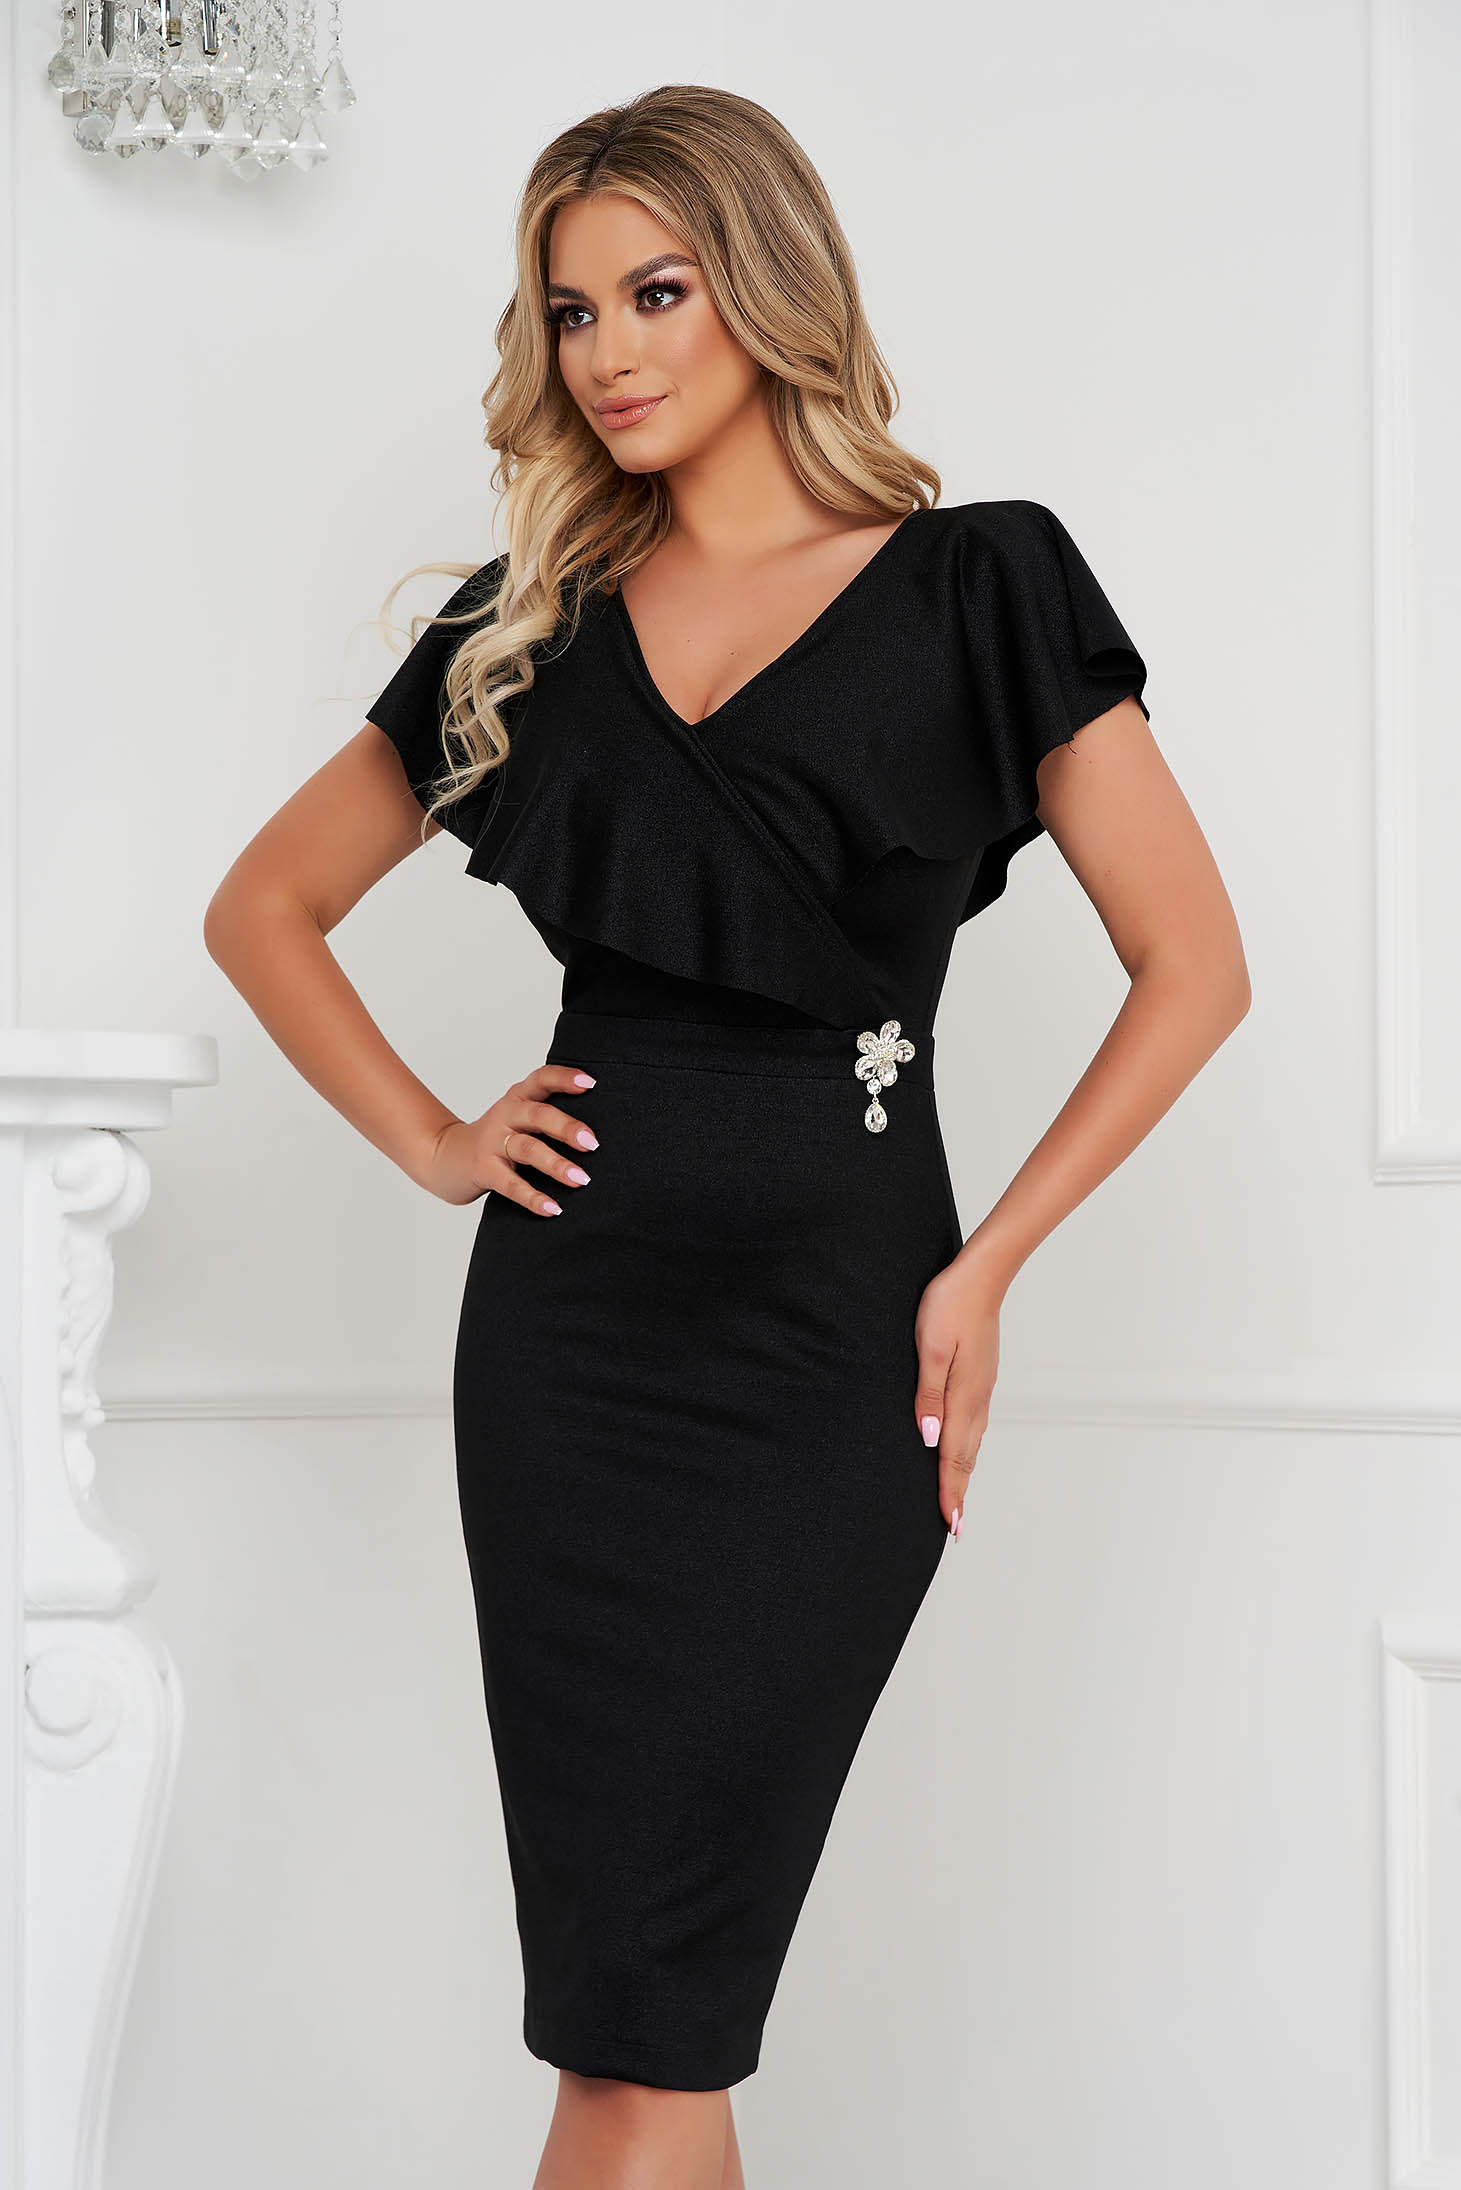 StarShinerS black dress midi pencil from elastic fabric frilly trim around cleavage line